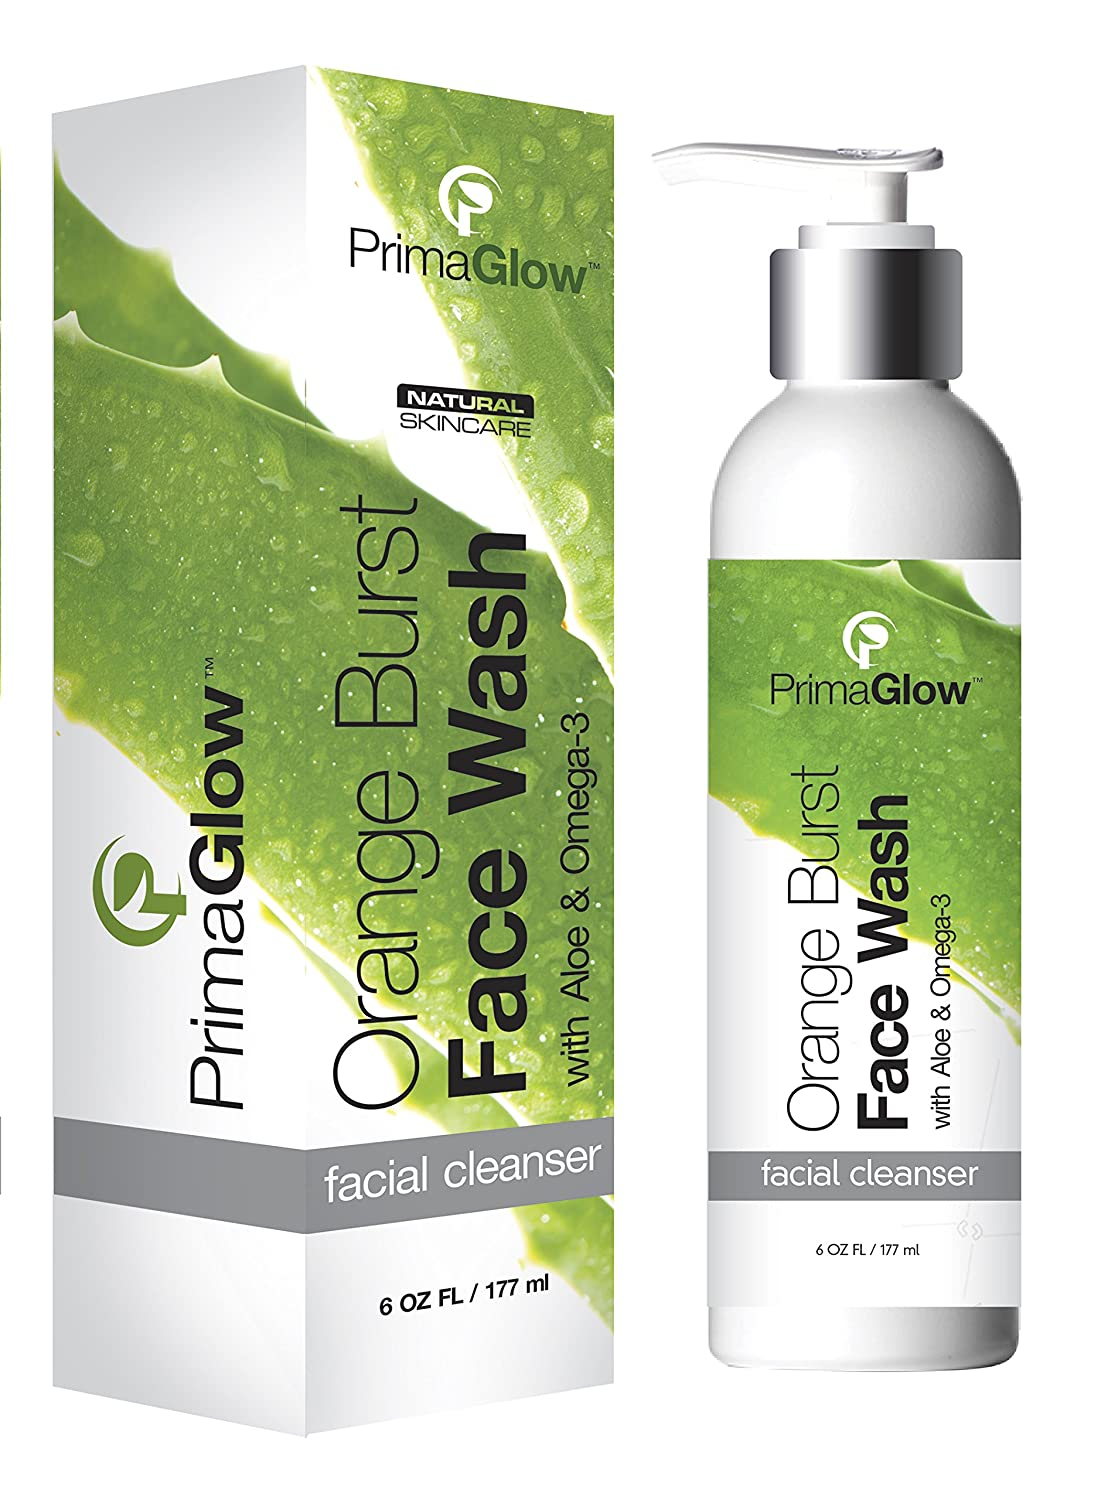 PrimaGlow Orange Burst Face Wash, Anti Aging Facial Cleanser, Organic 6 ounce